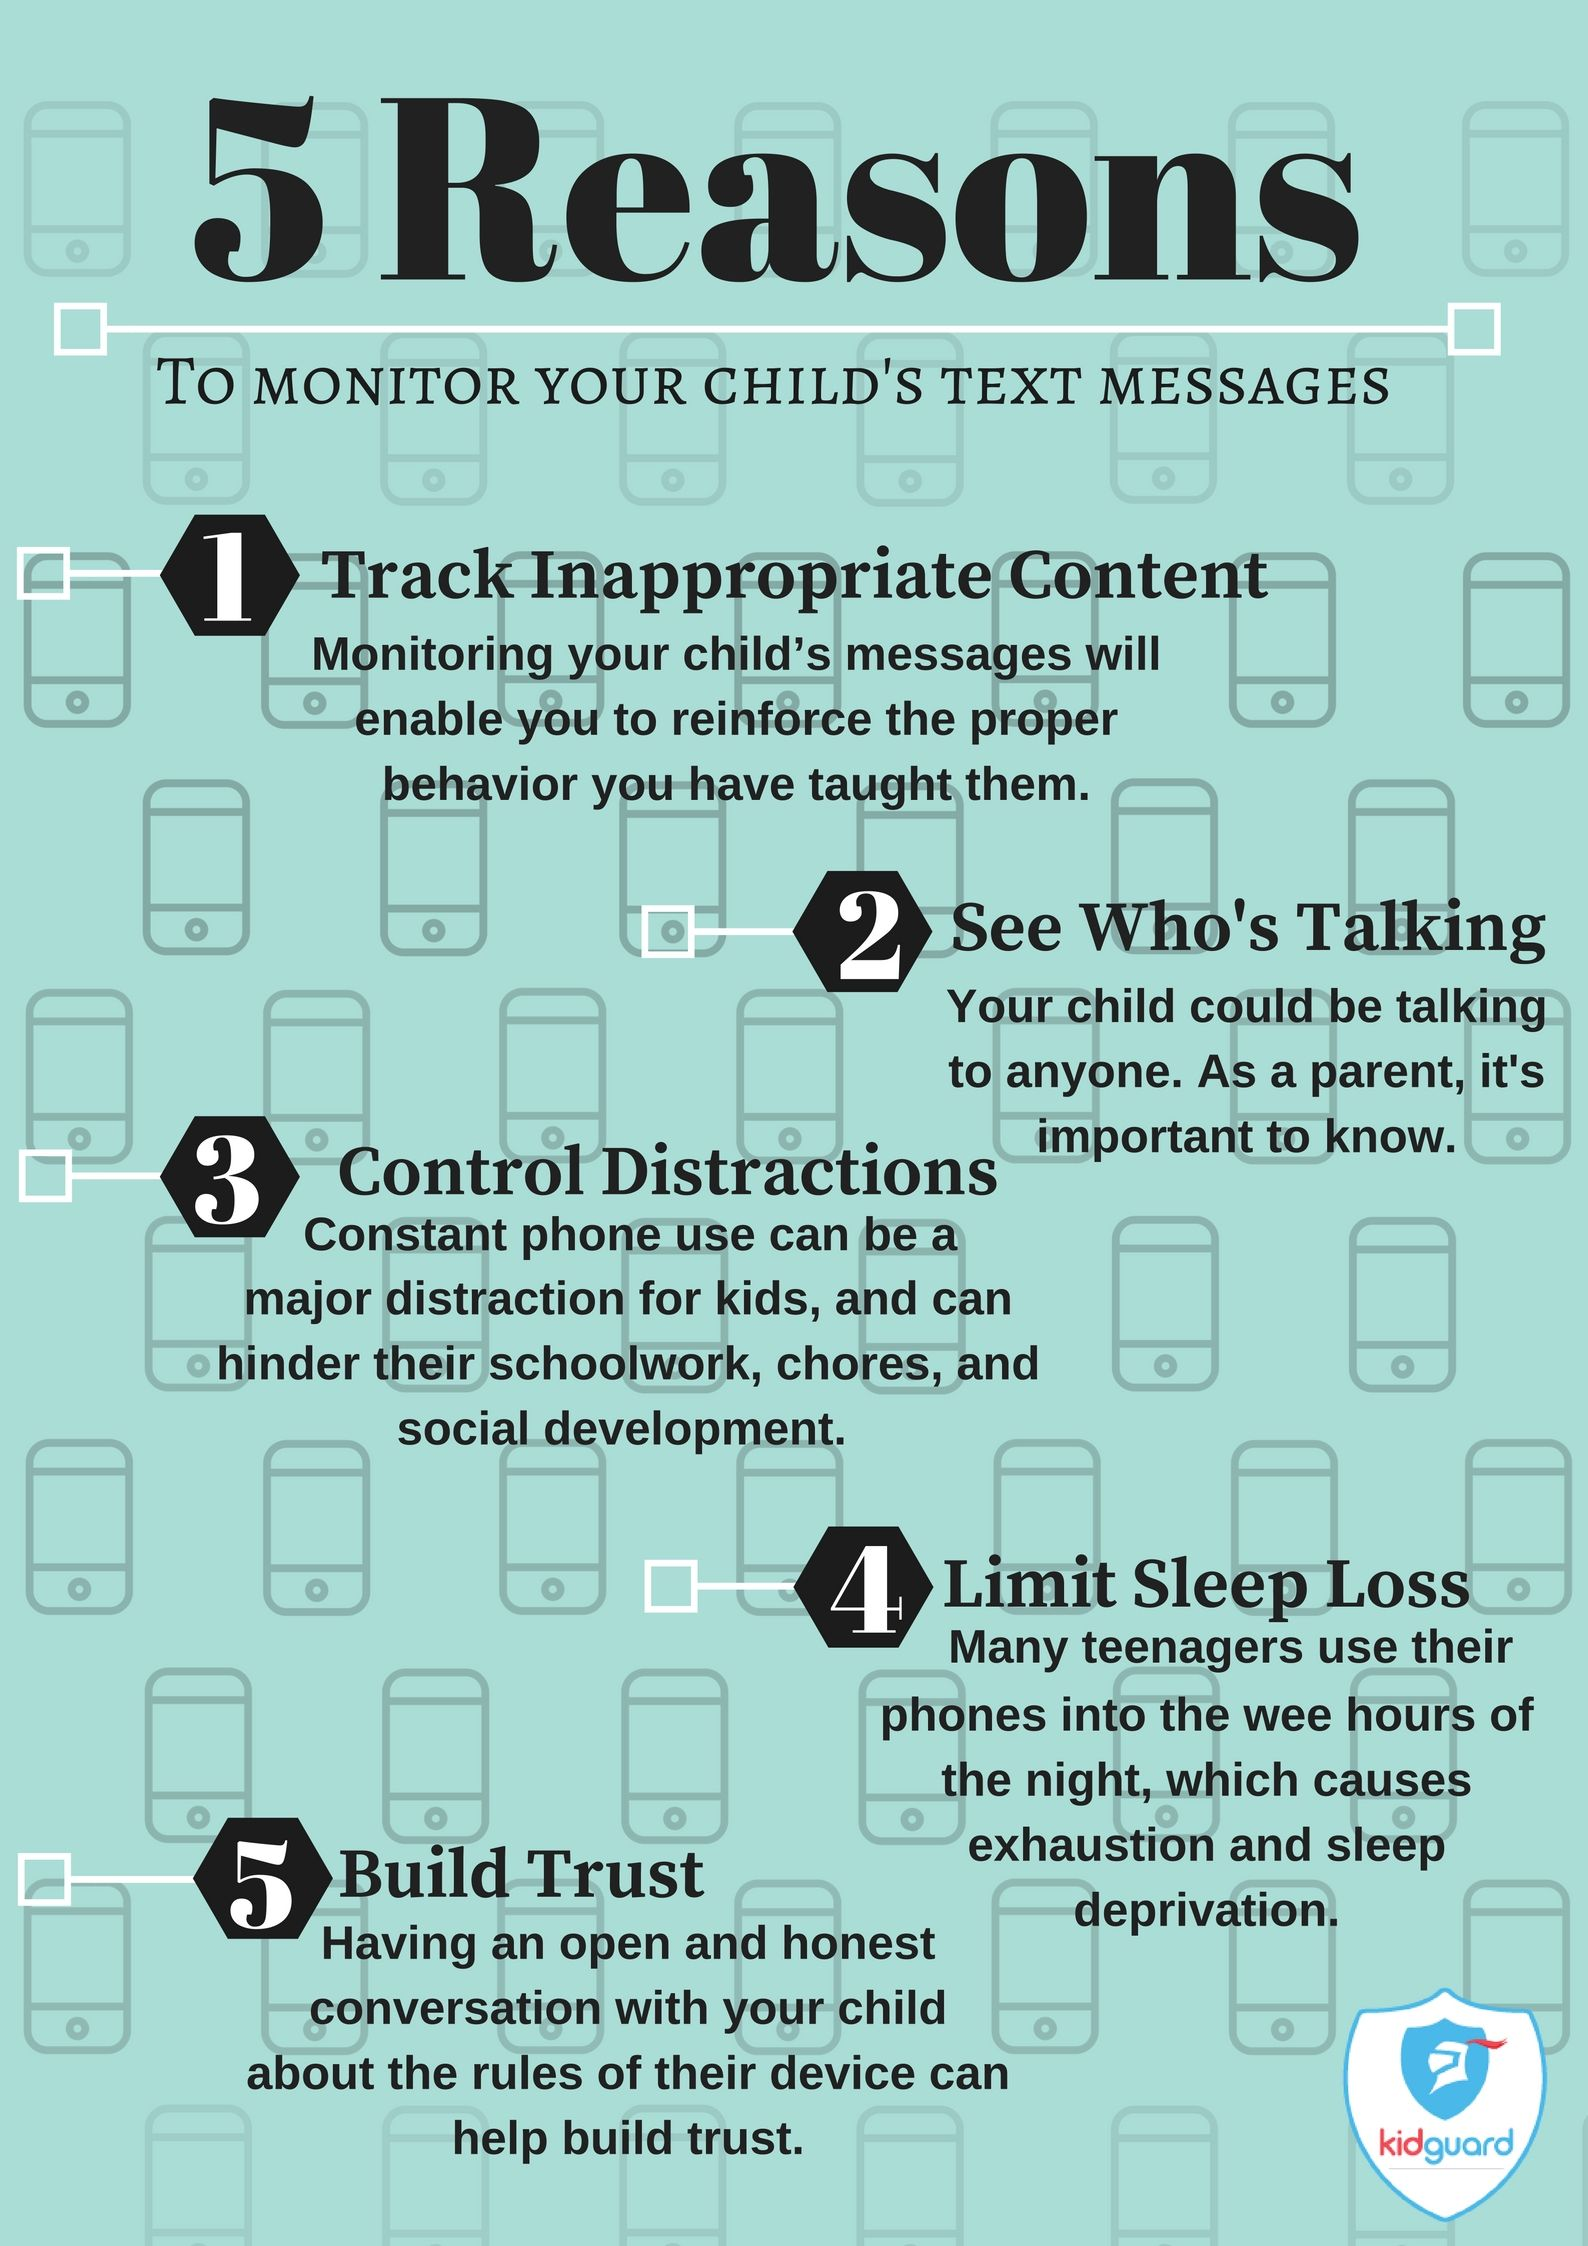 Parenting in the age of technology is a daunting task. It